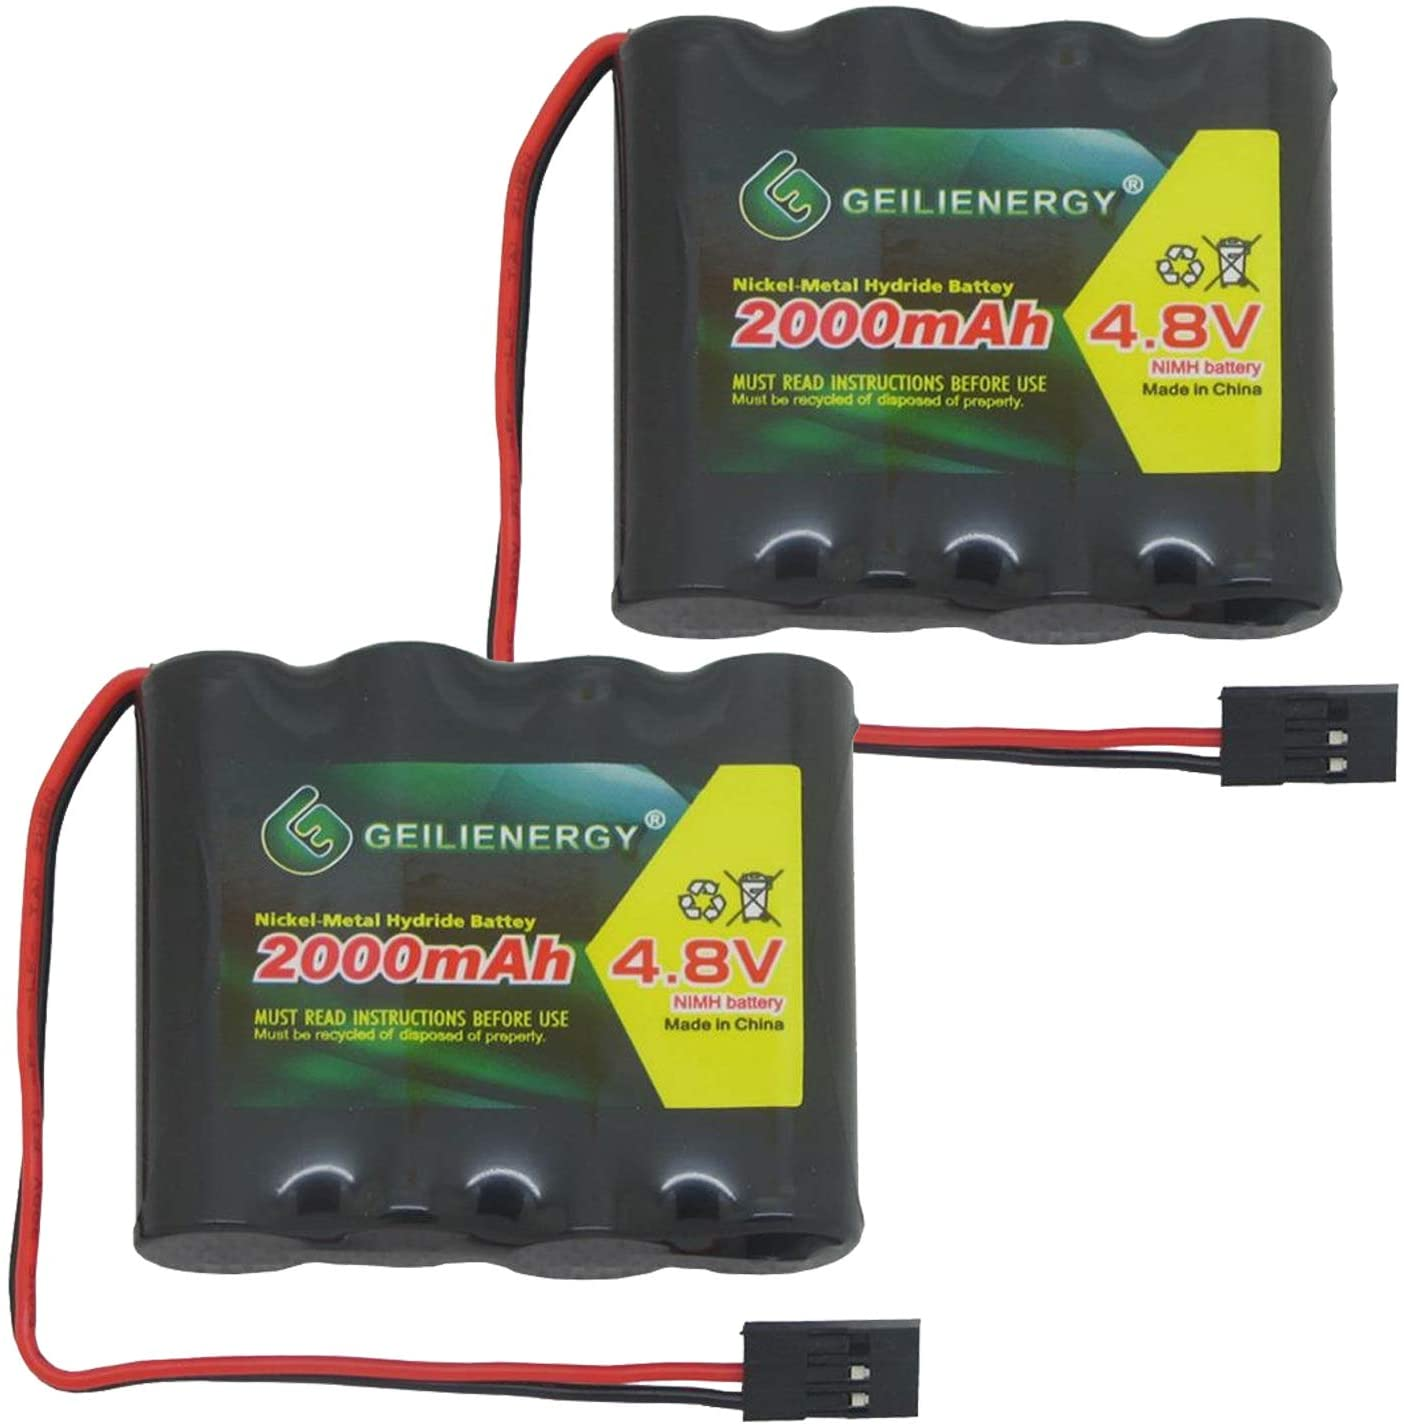 QBLPOWER 4.8V 2000mAh NiMH RX Receiver Battery Pack RC Futaba Hitec JR for RC Cars and Airplanes(2 Pack)